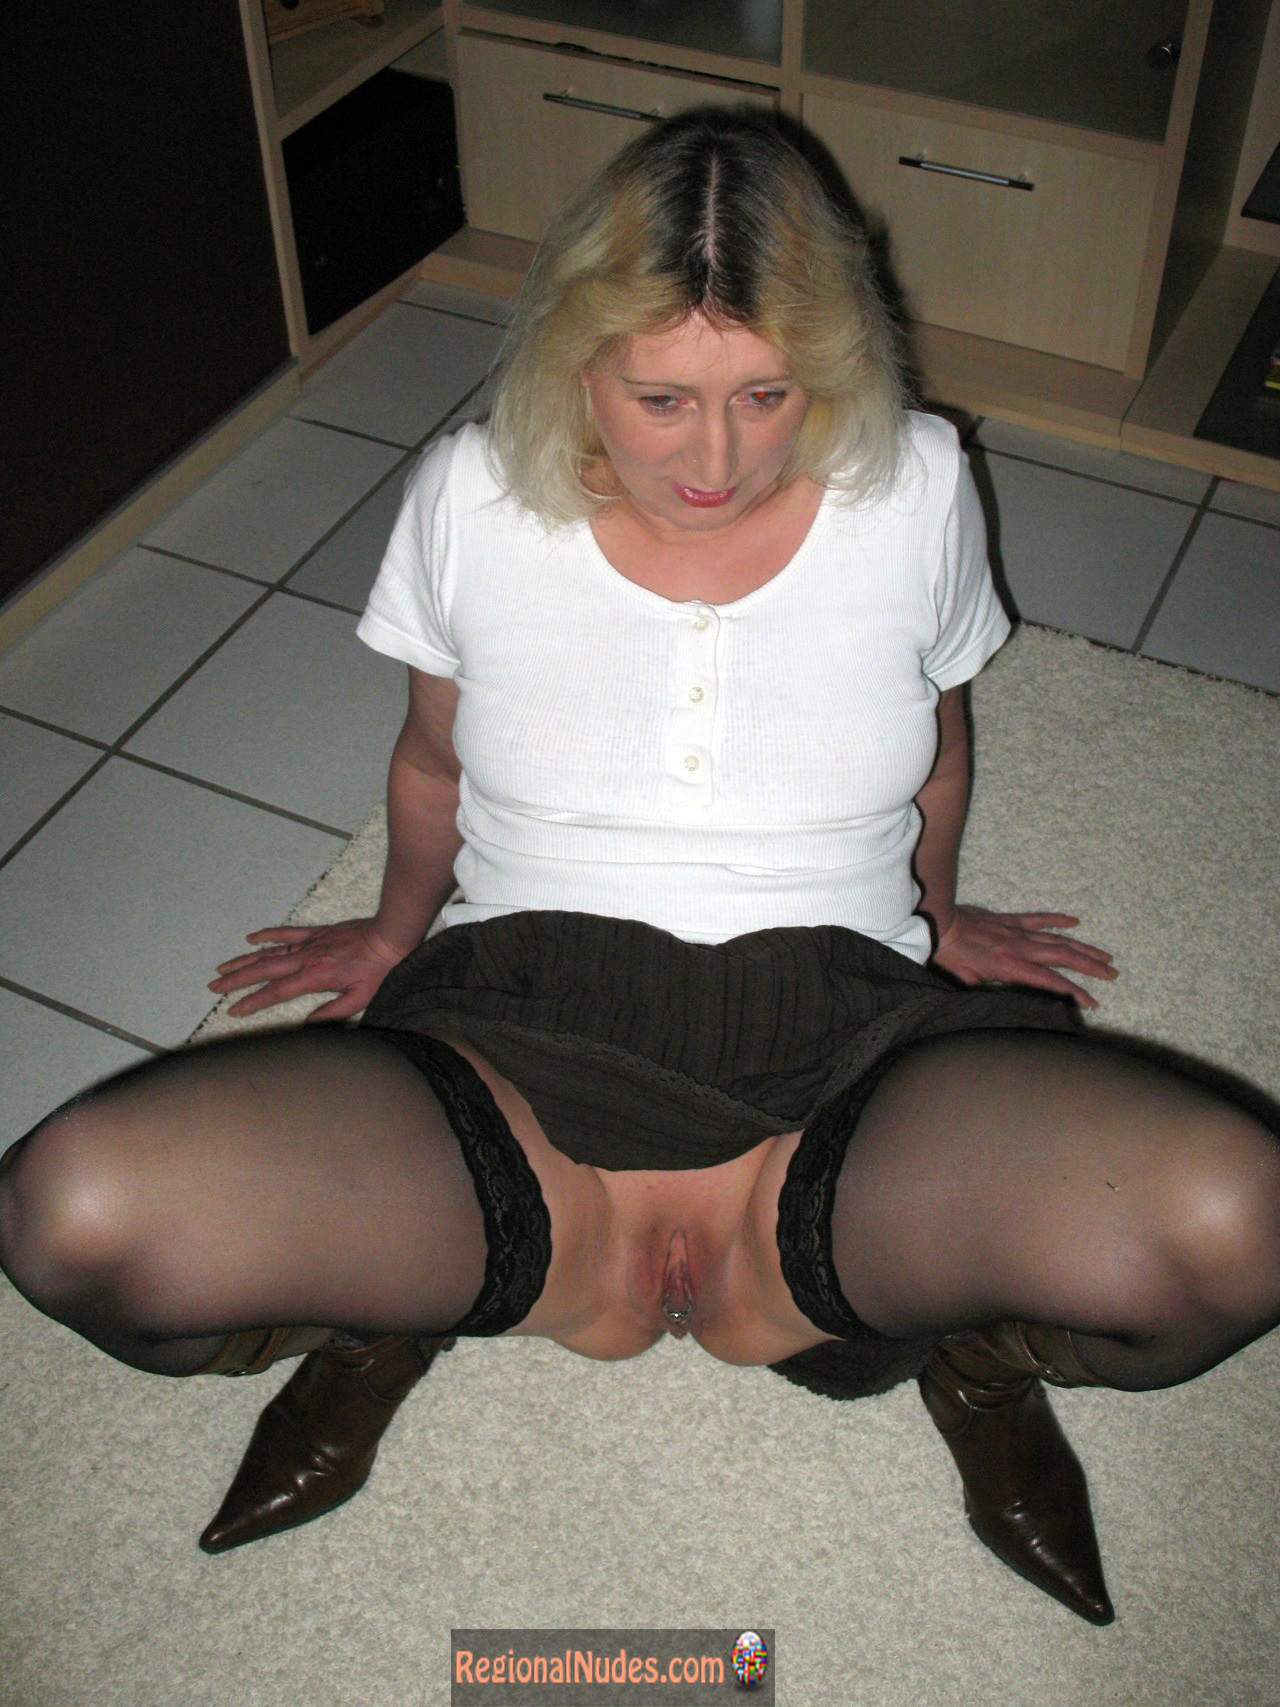 Sexy German Wife Cunt Under Skirt  Regional Nude Women Photos - Only -1160